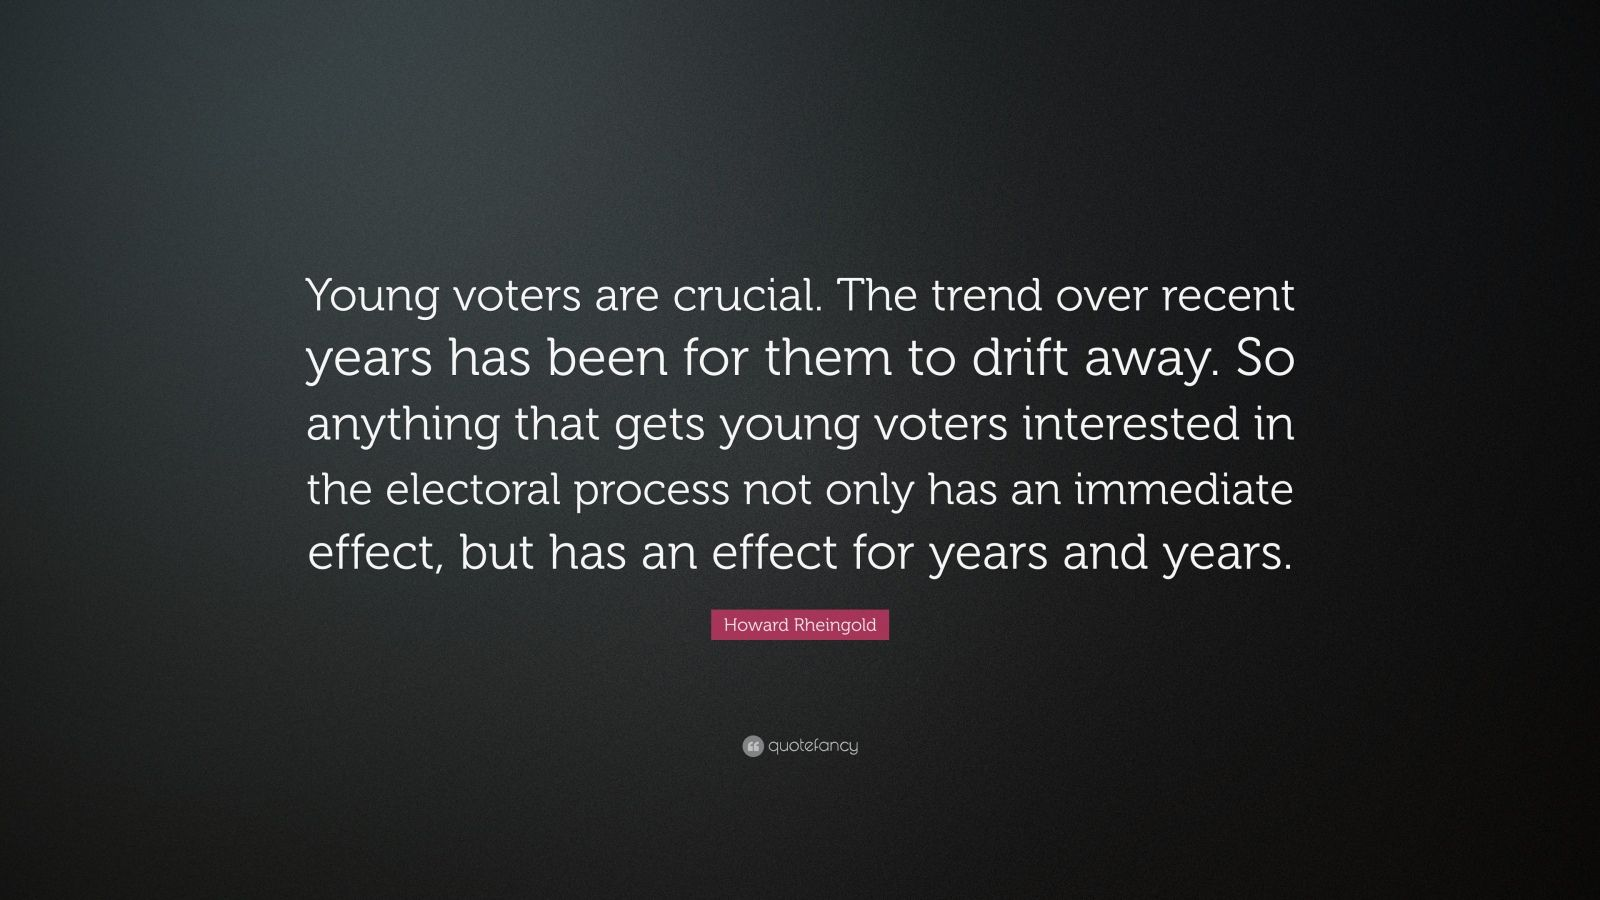 "Howard Rheingold Quote: ""Young voters are crucial. The trend over recent years has been for them to drift away. So anything that gets young voters interested in the electoral process not only has an immediate effect, but has an effect for years and years."""